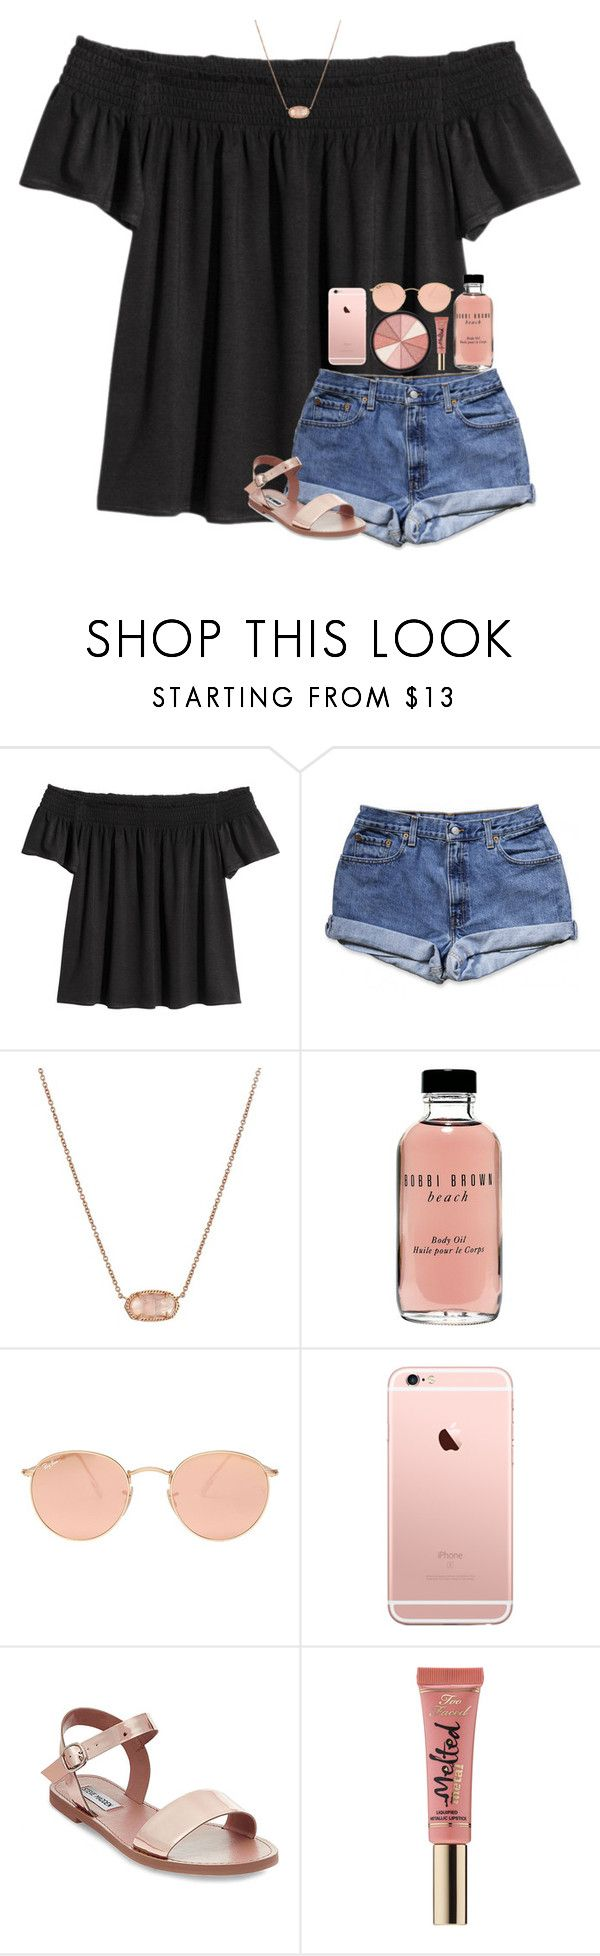 """Rosy"" by southerngirl03 ❤ liked on Polyvore featuring Kendra Scott, Bobbi Brown Cosmetics, Ray-Ban, Steve Madden, Too Faced Cosmetics and Smashbox"